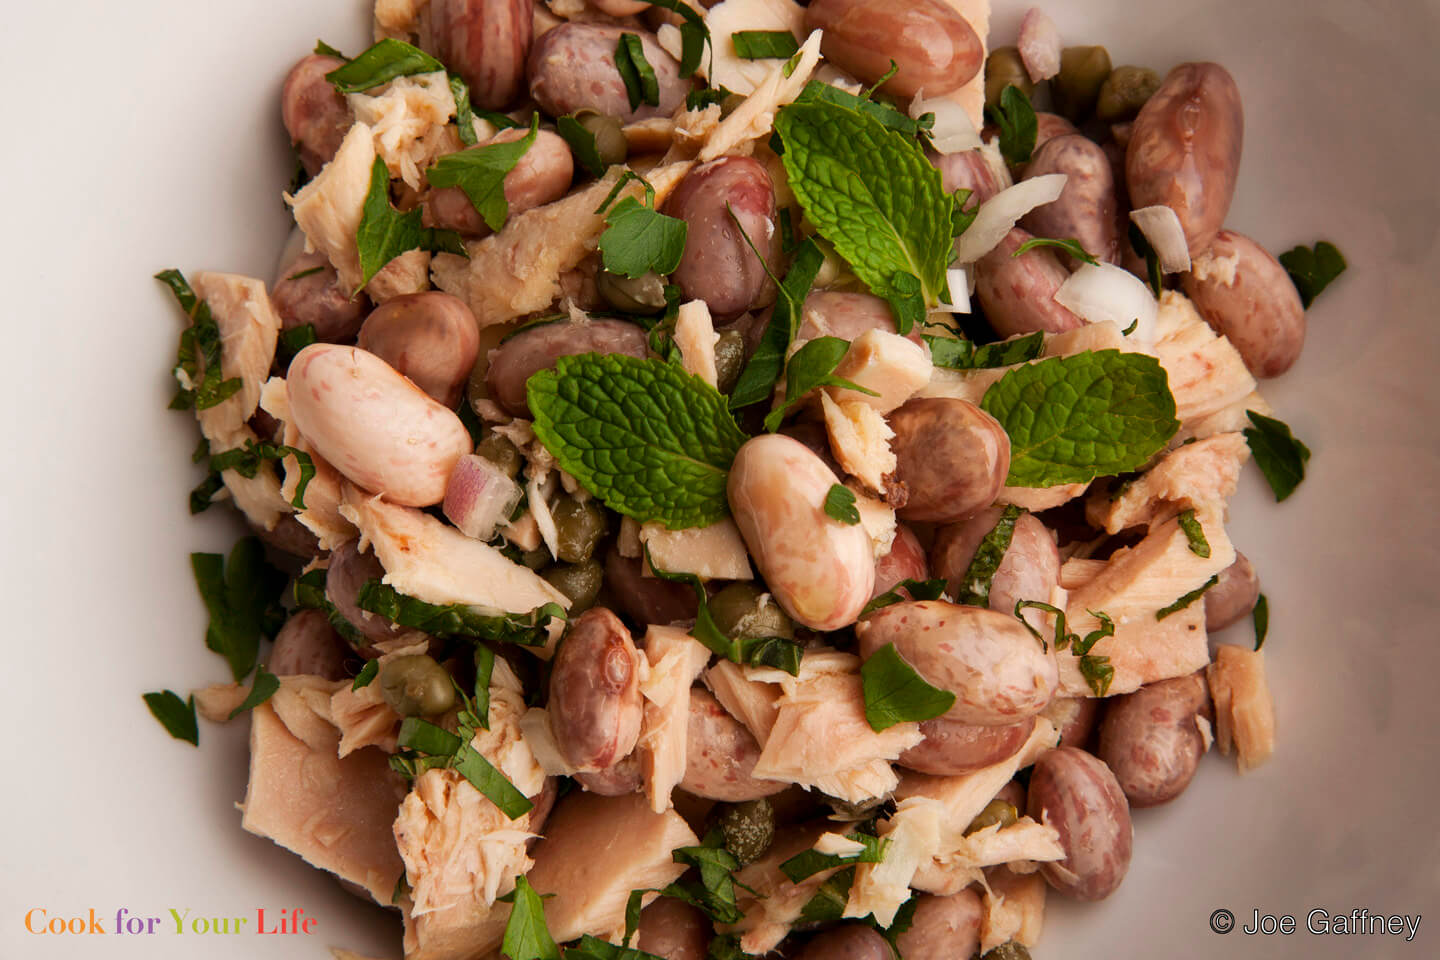 Stay on the Pulses – Bean and Pea Recipes Image